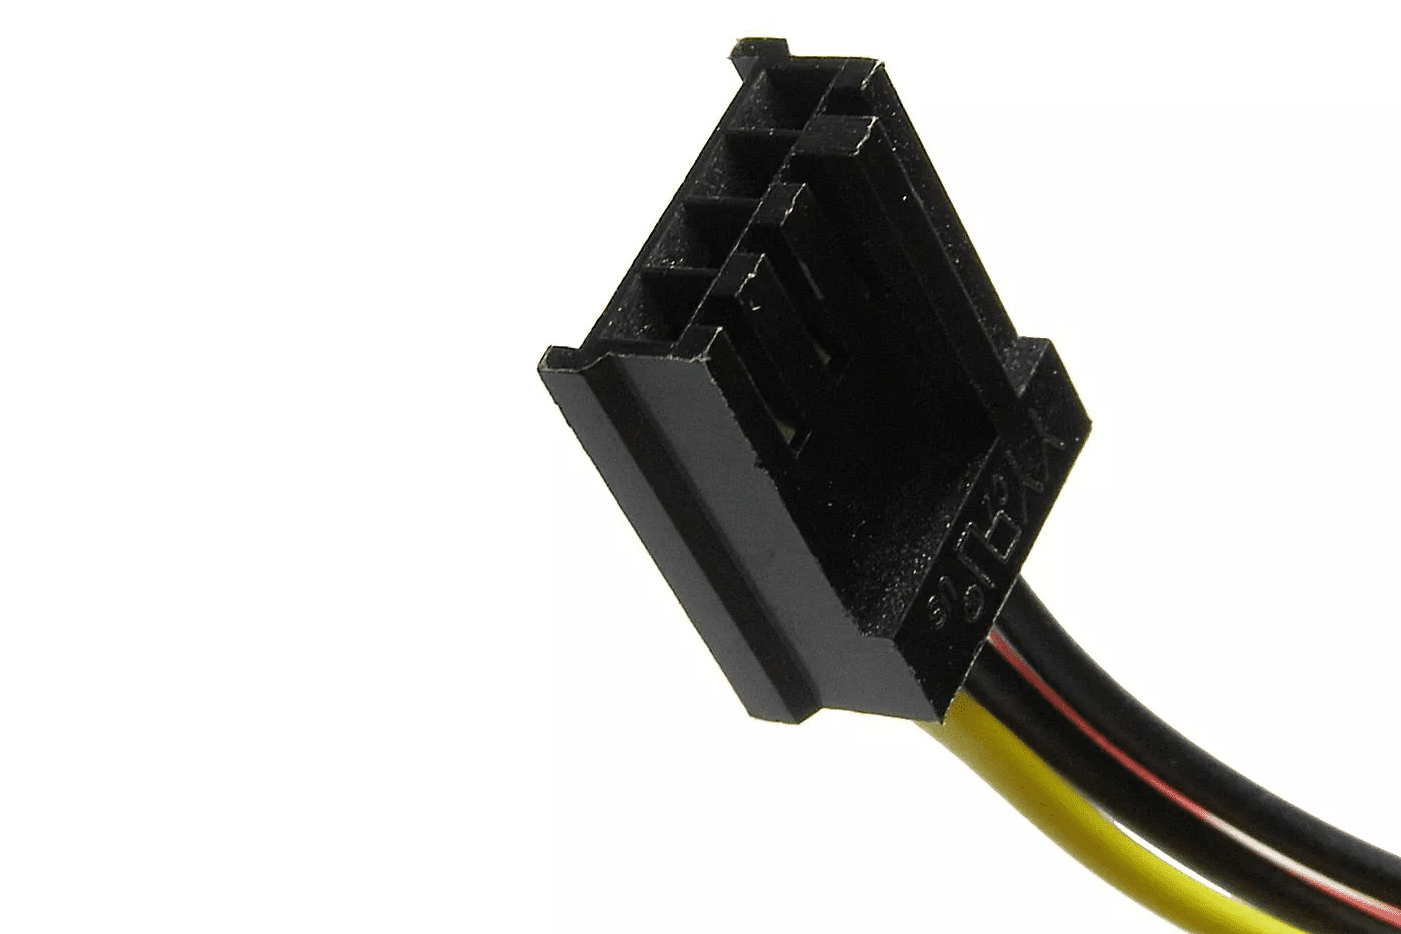 [SCHEMATICS_48IS]  4-pin Floppy Drive Power Connector Pinout | Wiring Diagram Further Floppy Drive Connector Pins On |  | Lifewire